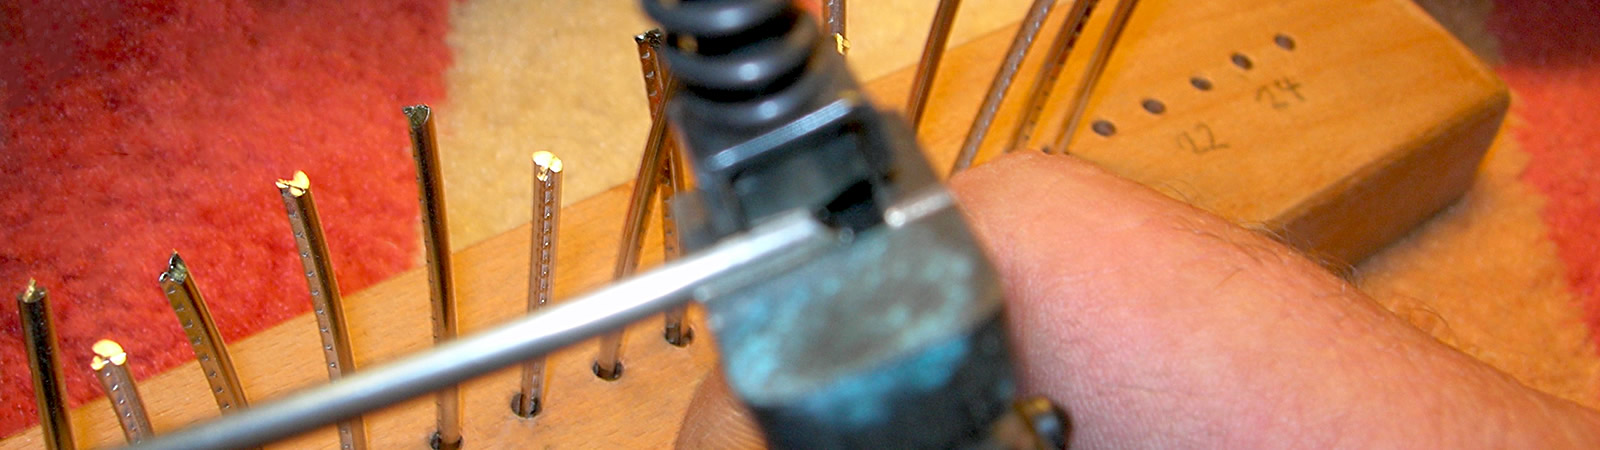 Krueger Guitars Home Page guitar repairs section banner image